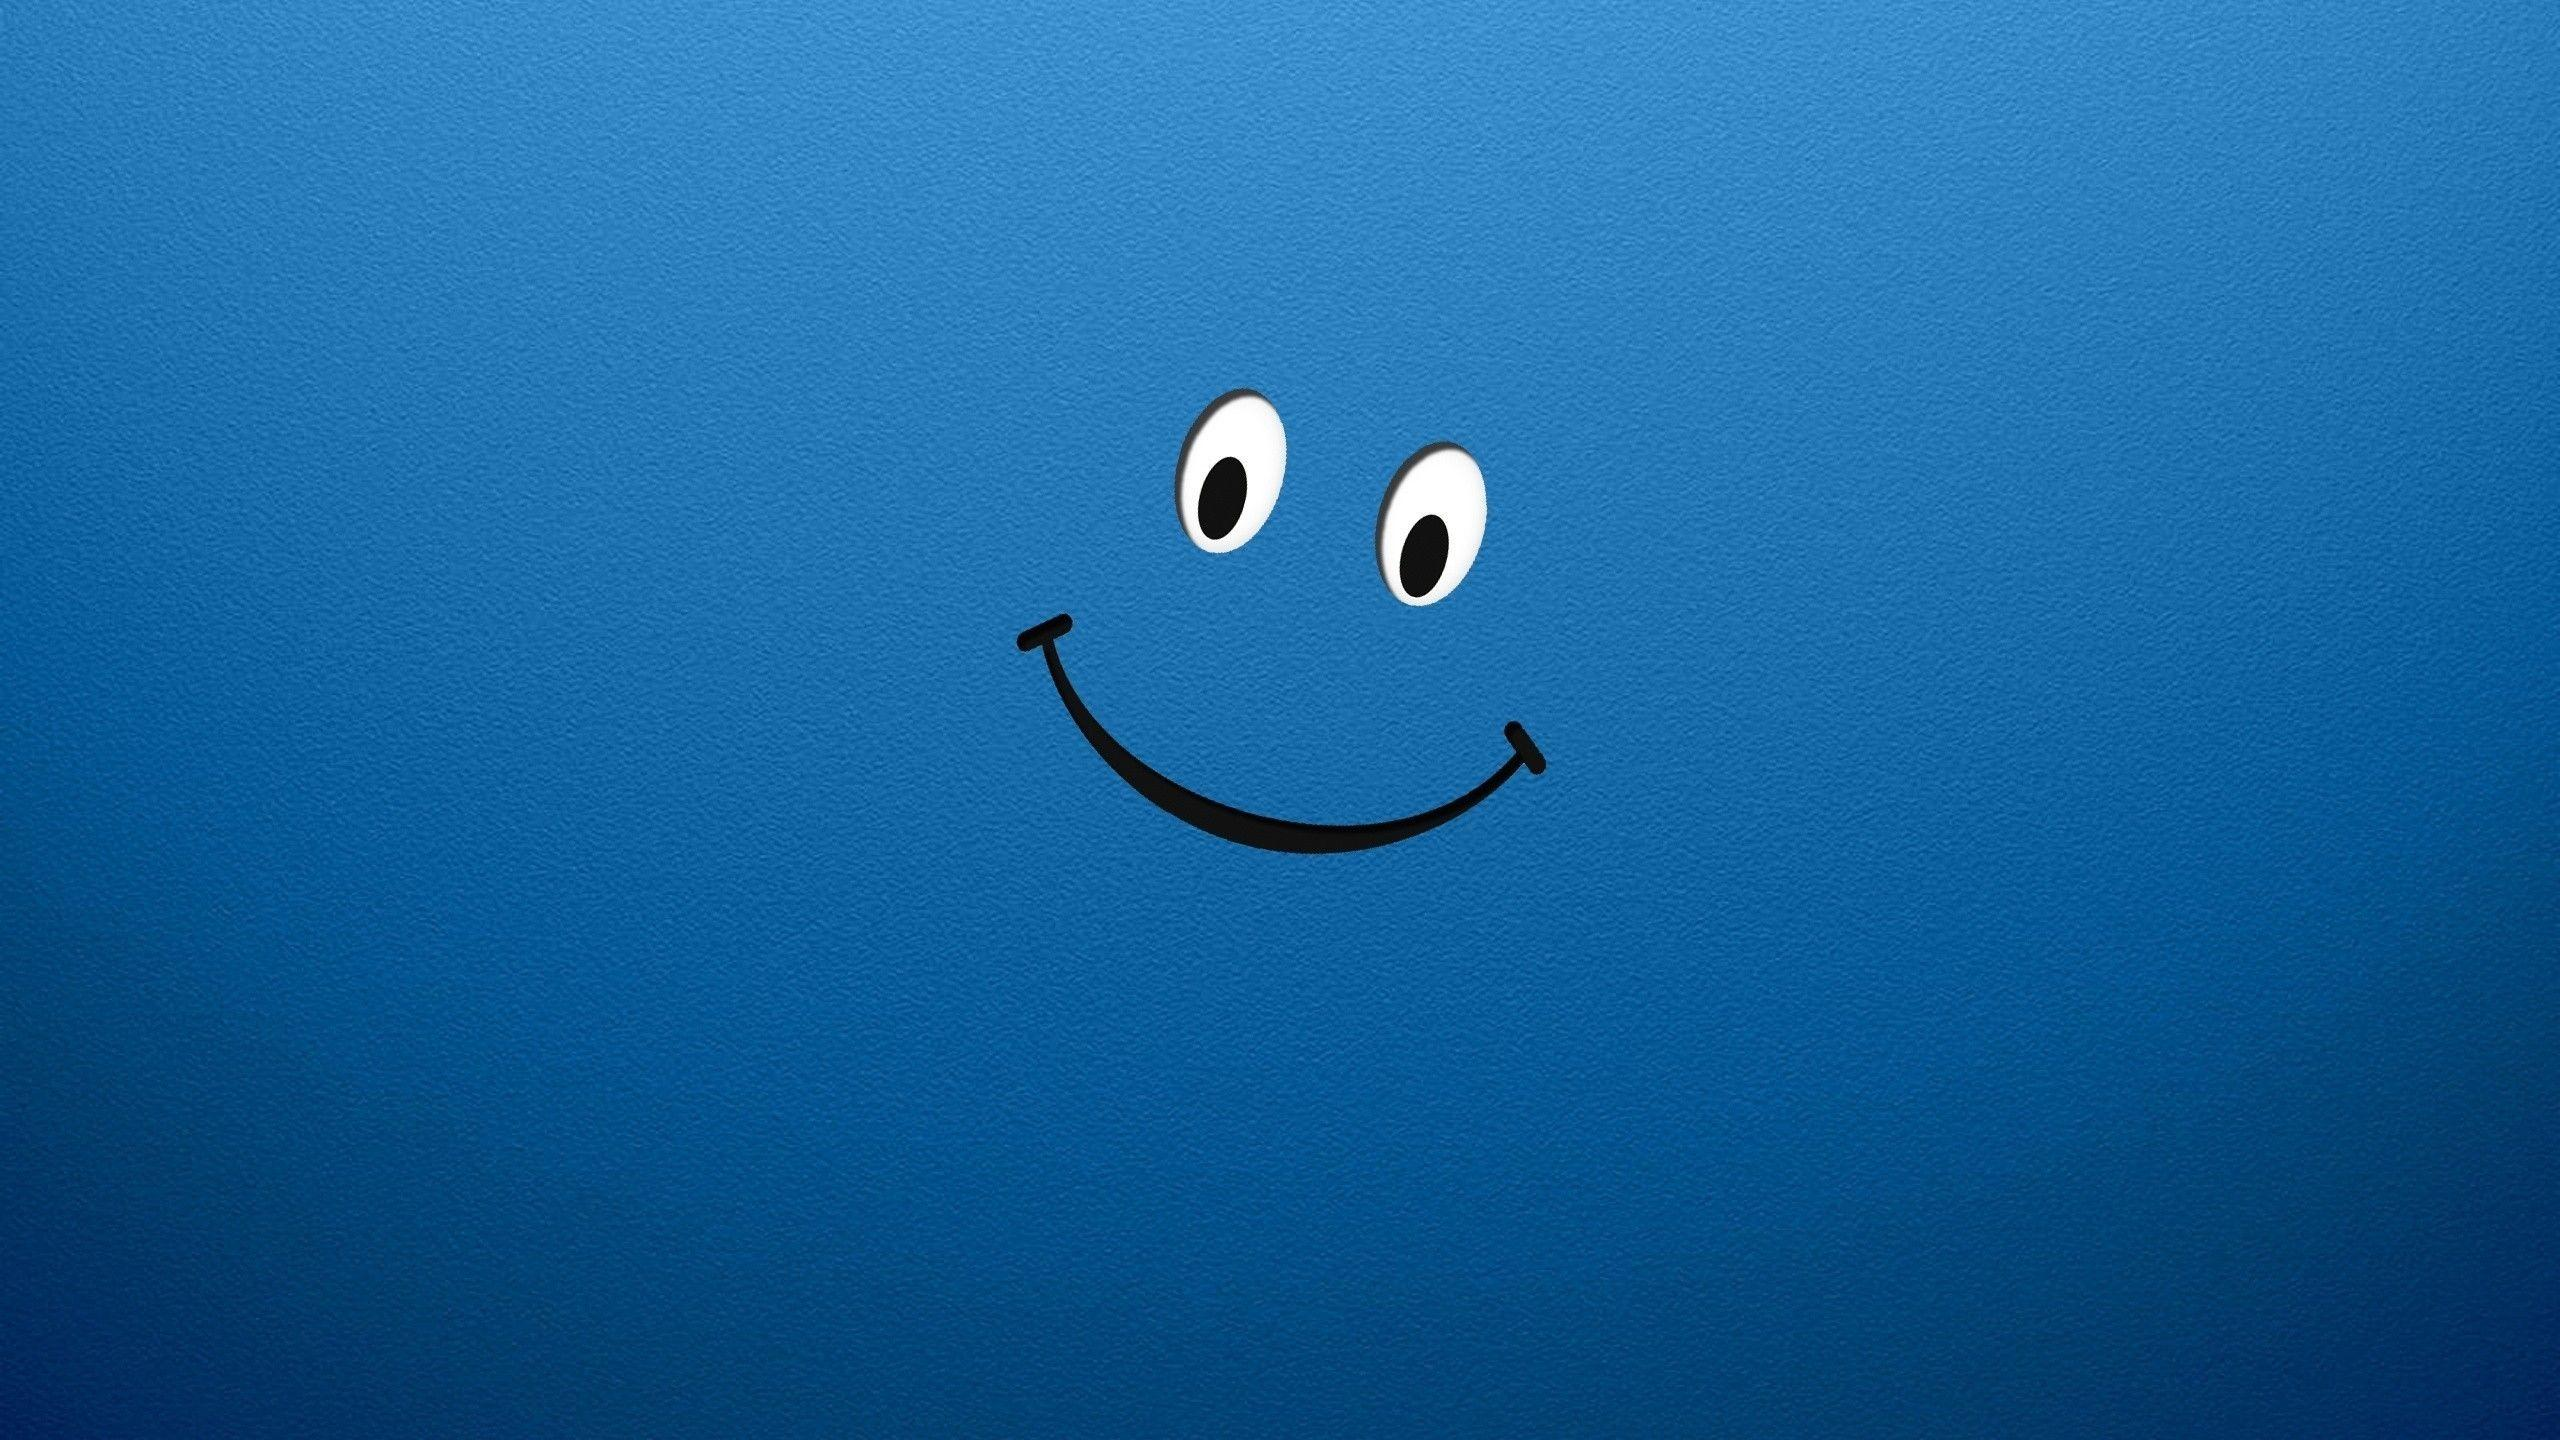 fun wallpapers happy - photo #6